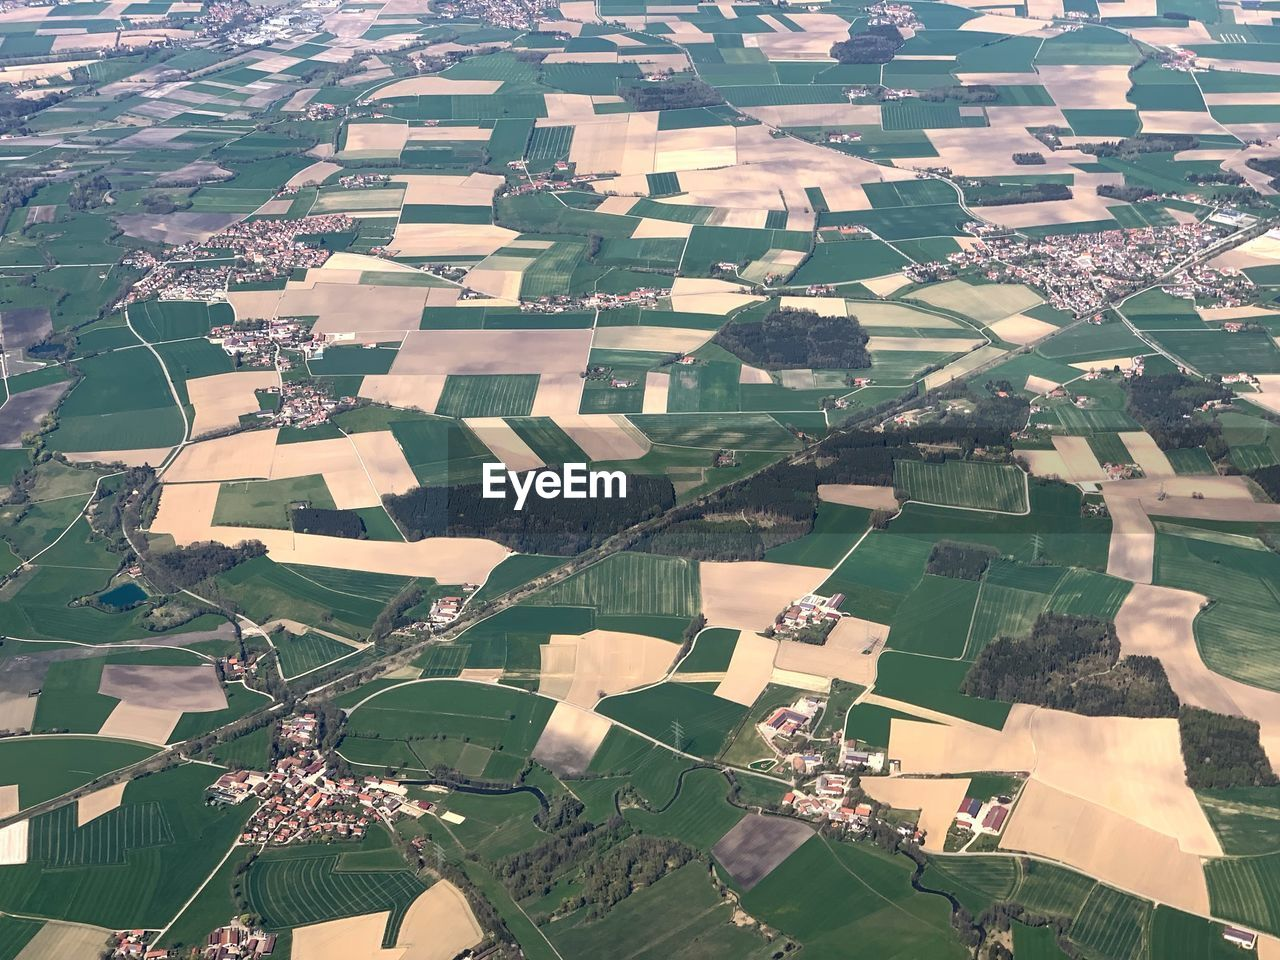 patchwork landscape, architecture, aerial view, nature, environment, day, no people, landscape, building exterior, agriculture, built structure, farm, building, high angle view, beauty in nature, field, full frame, rural scene, backgrounds, outdoors, cityscape